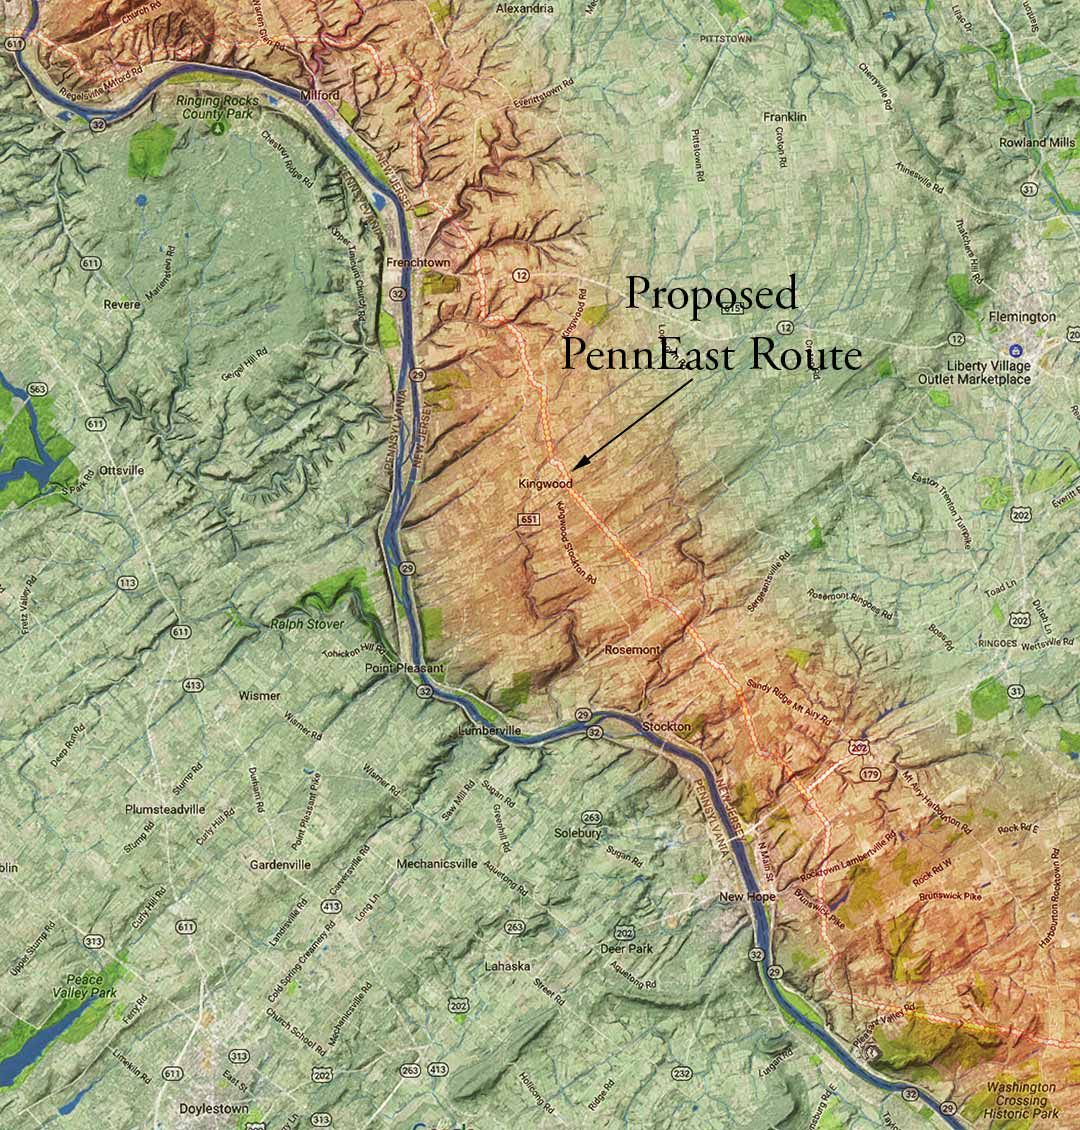 Rugged Bobcat habitat along the Delaware River and proposed PennEast route in NJ